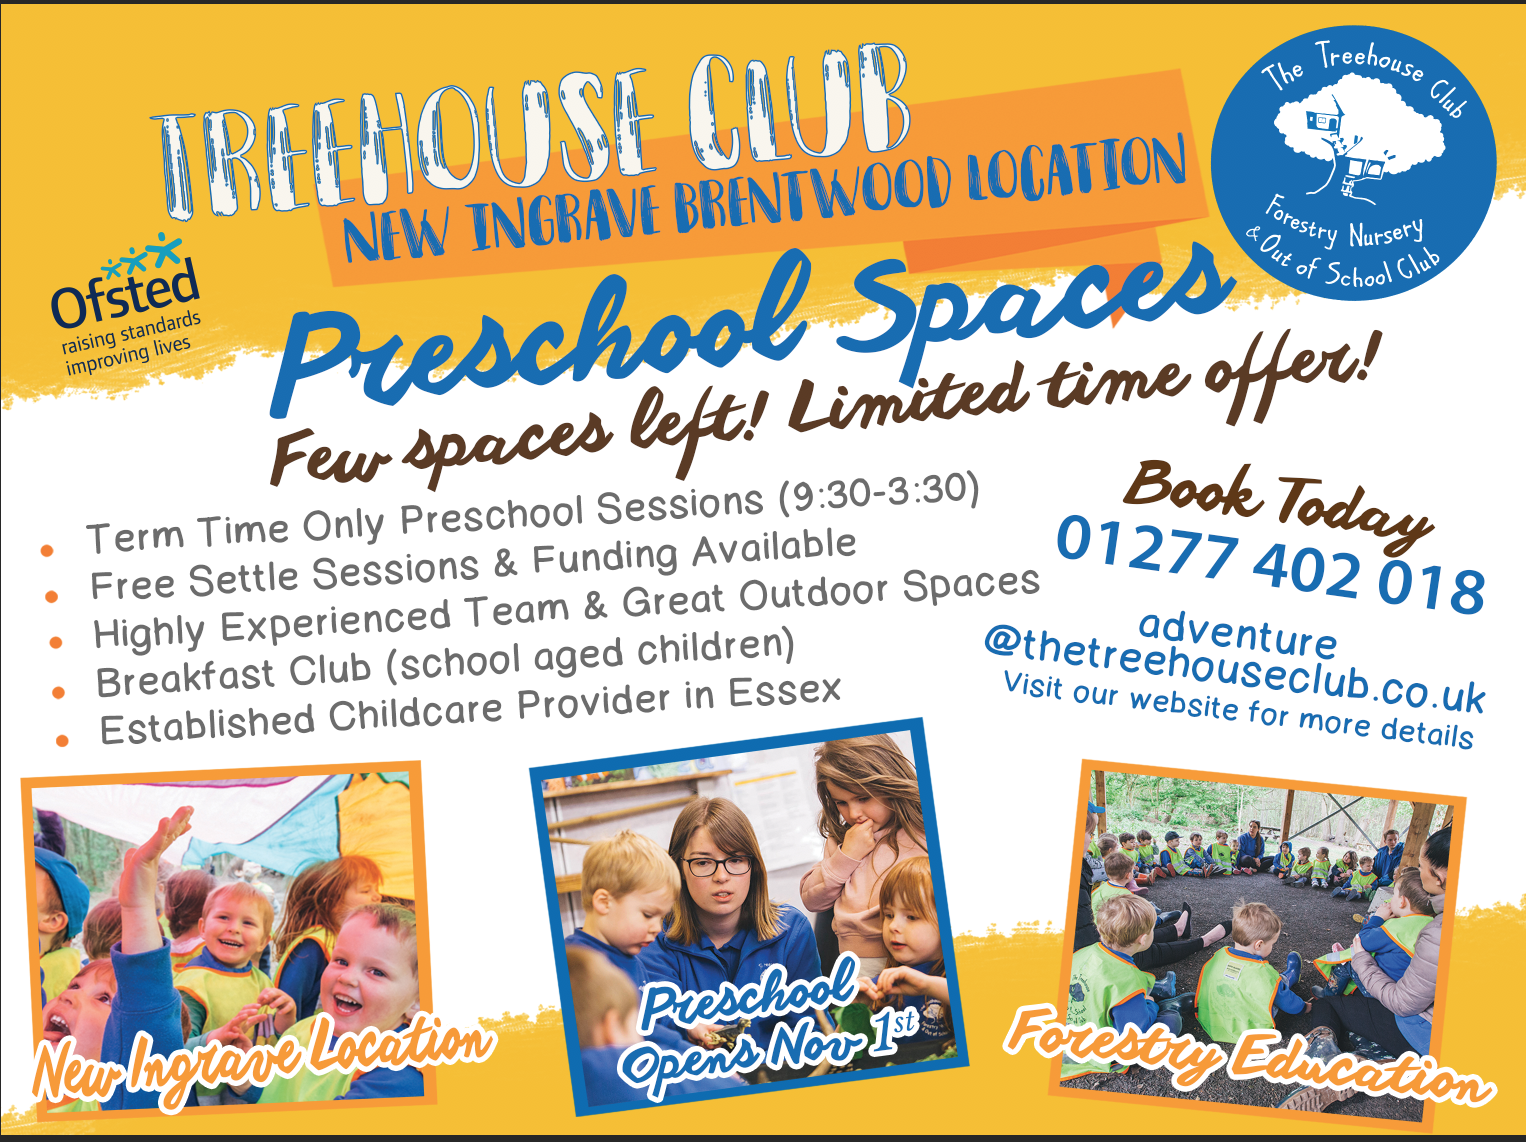 Treehouse Preschool Open Morning in Ingrave